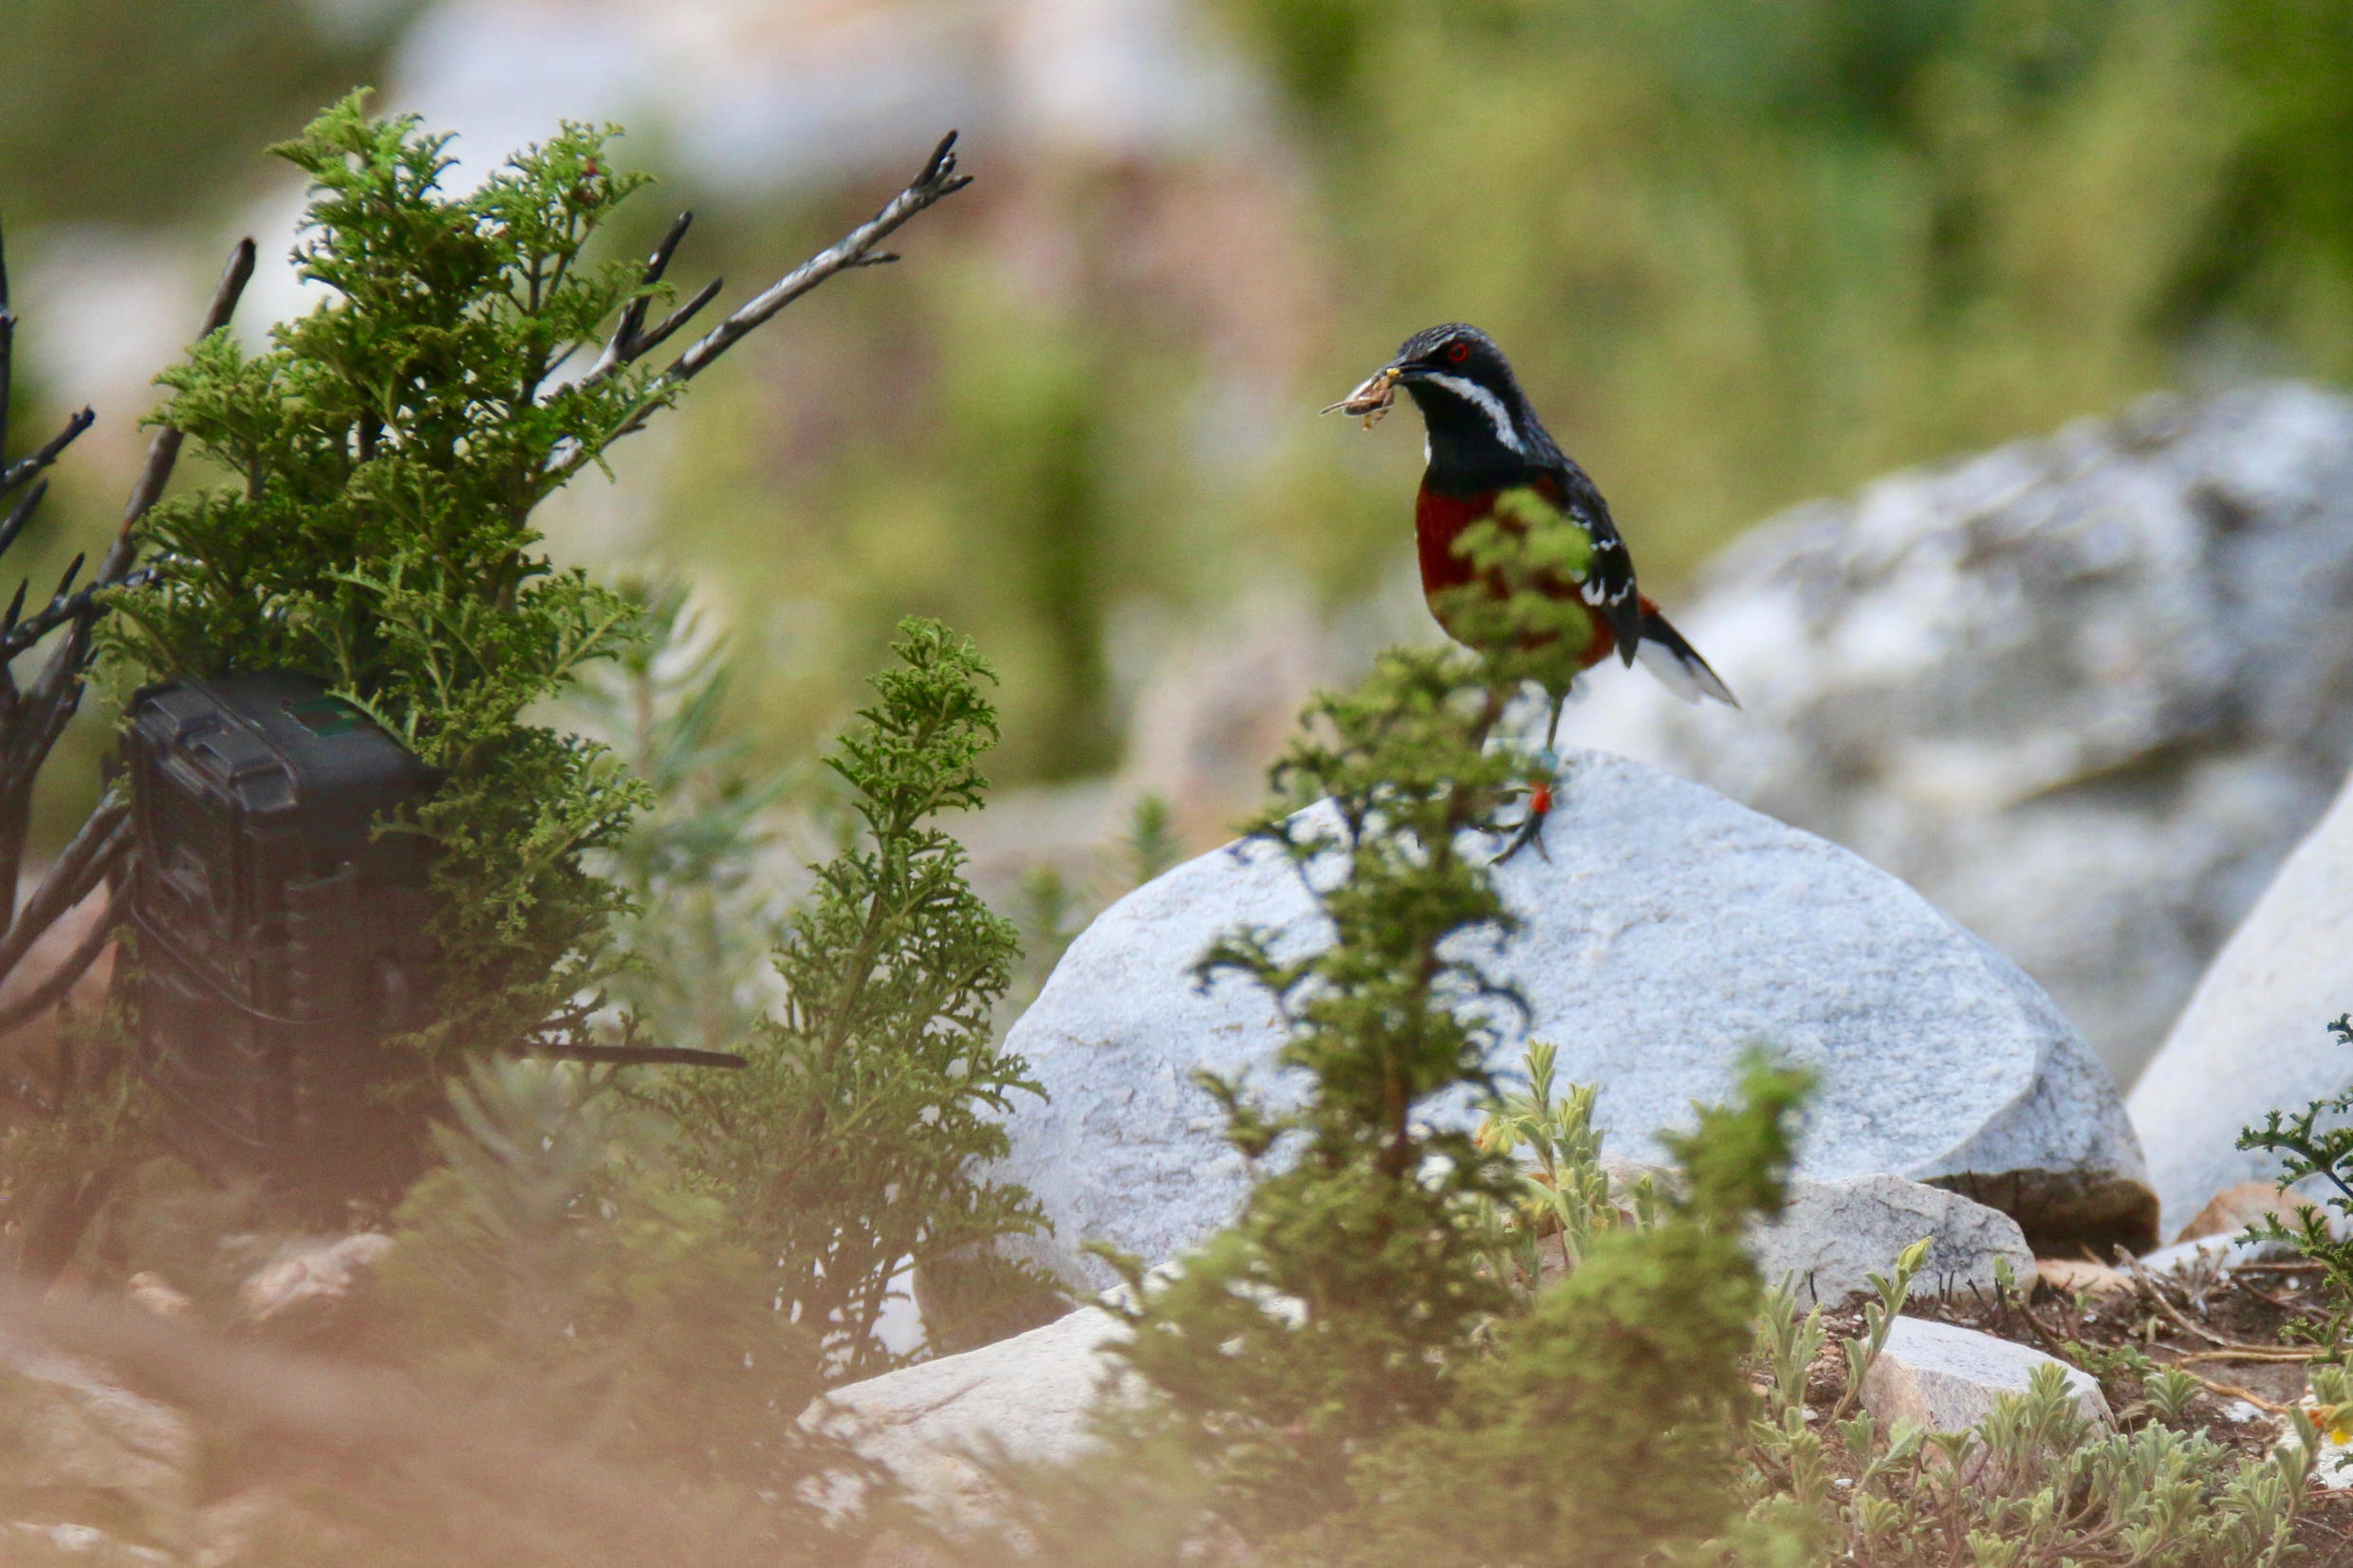 A Cape rock-jumper brings food to its nestlings in the fynbos while being monitored by a trail camera set up by the researchers